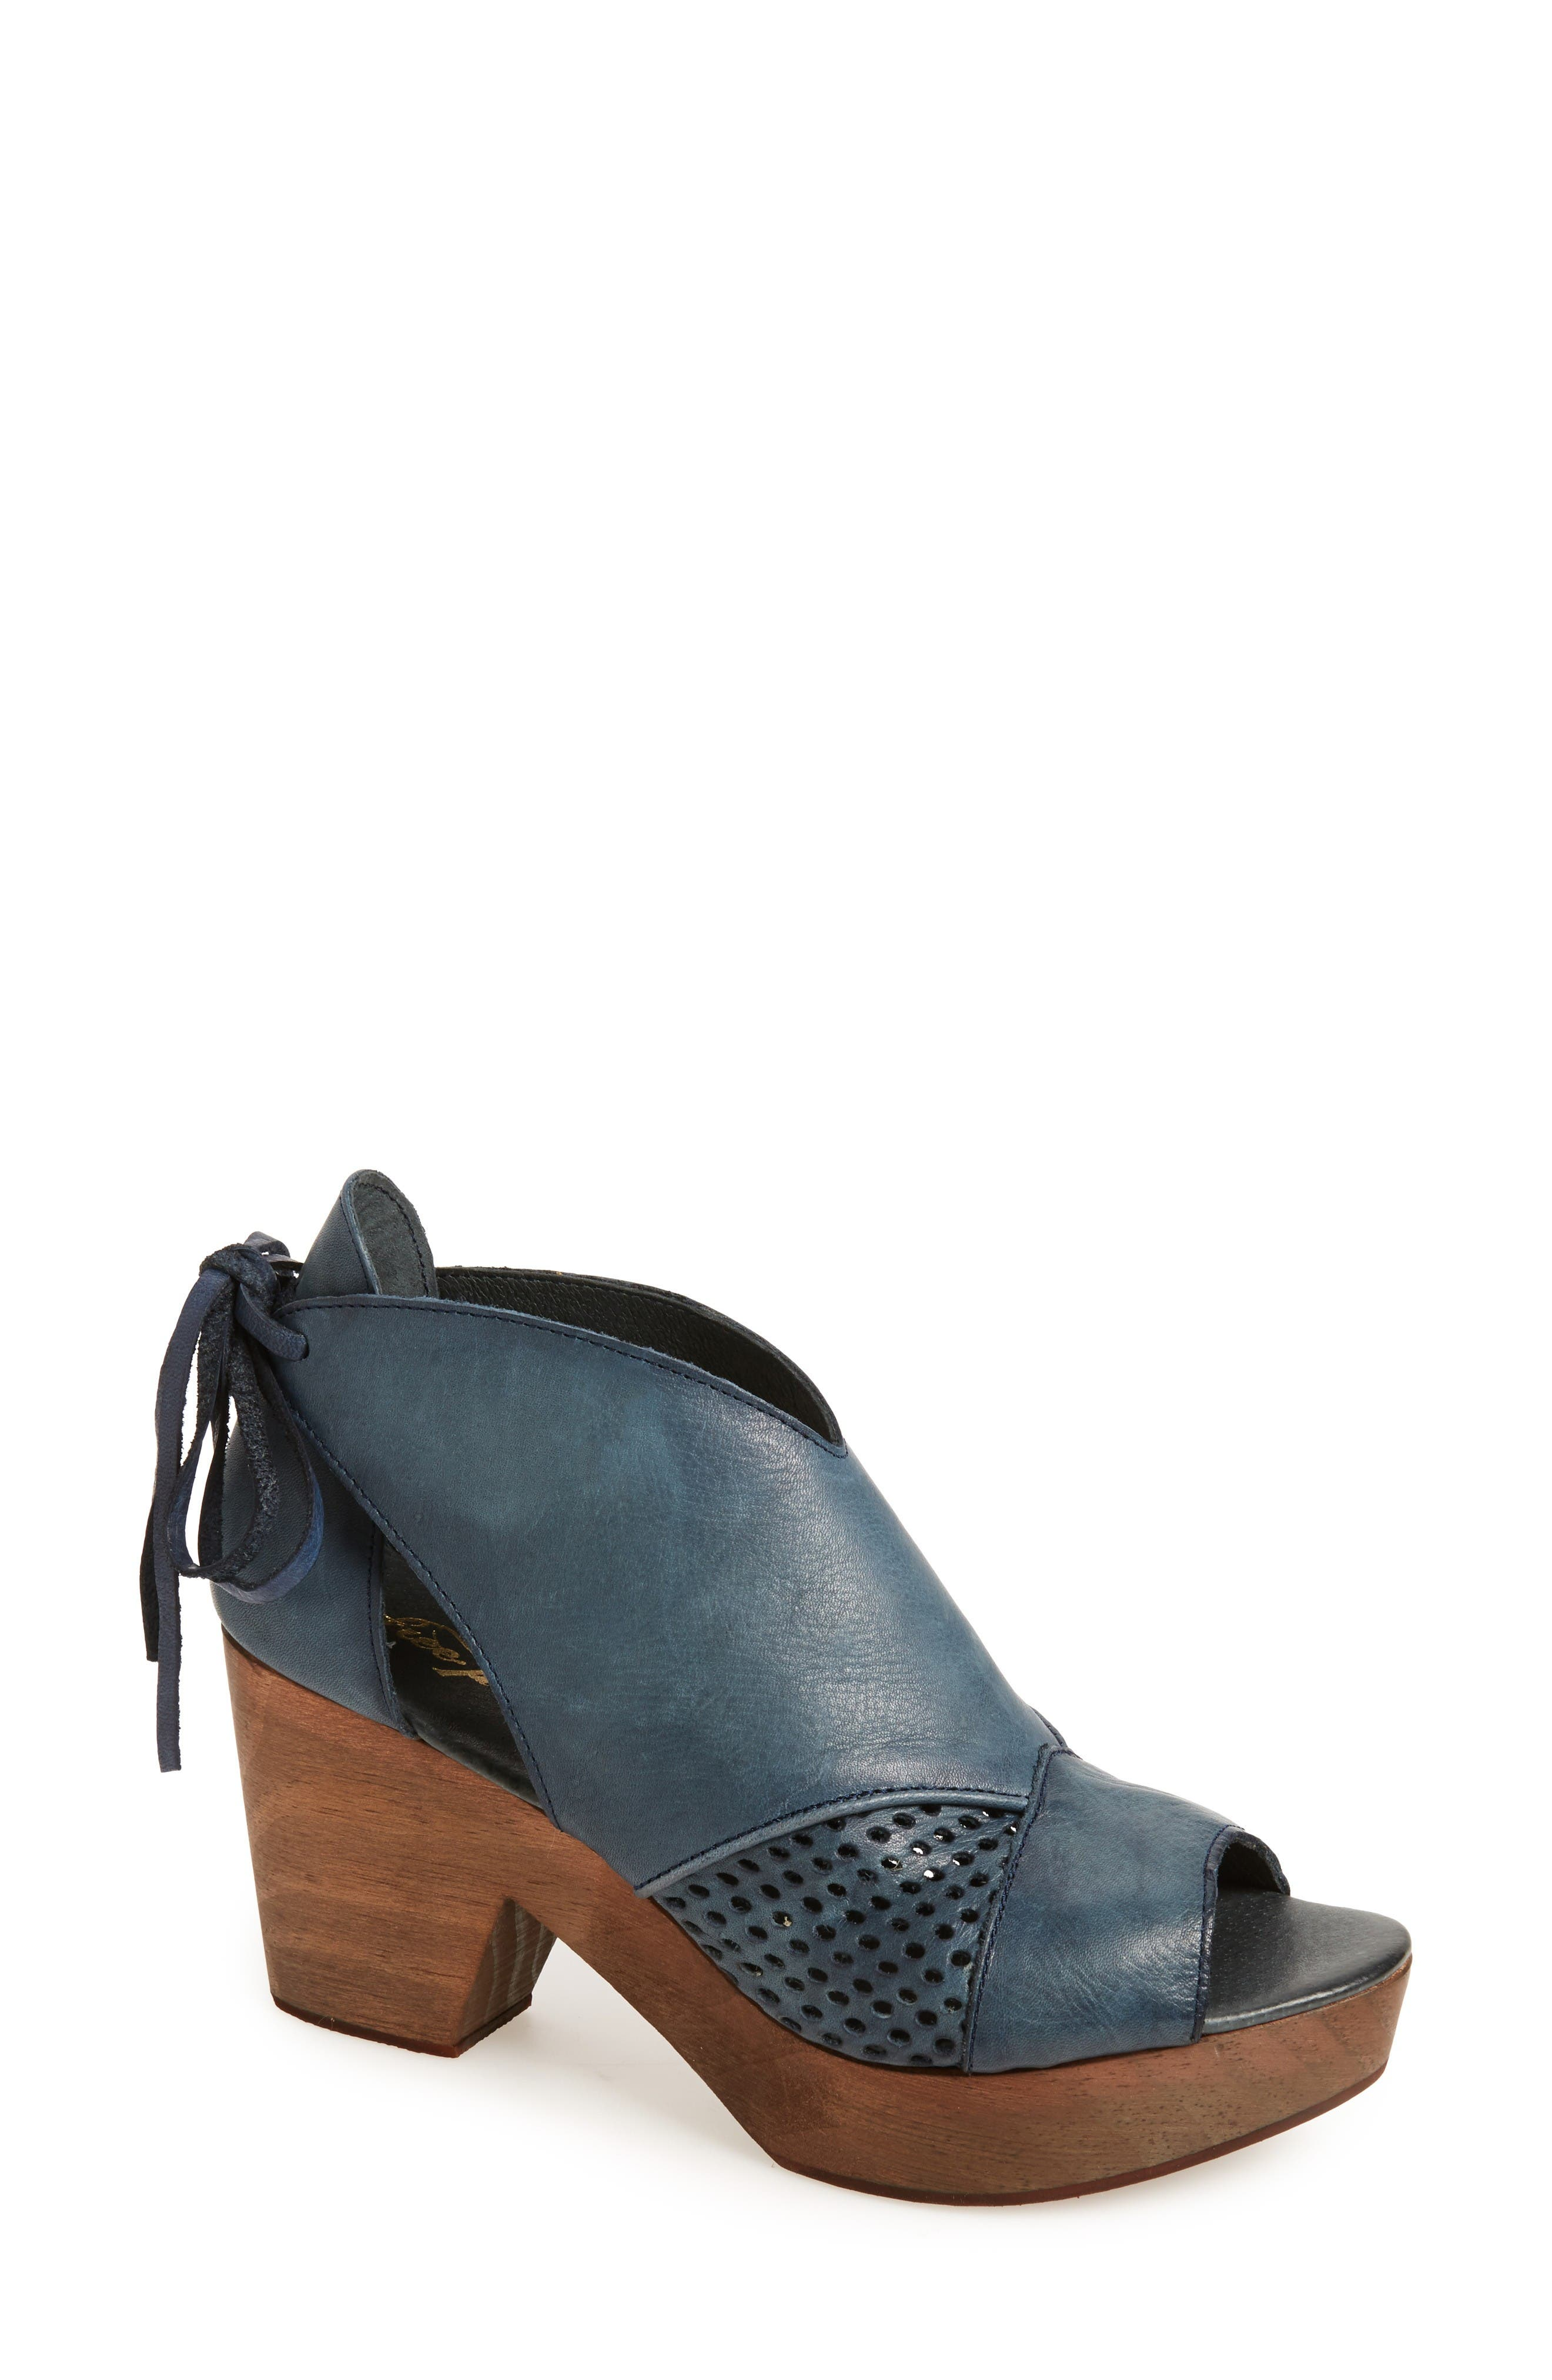 Alternate Image 1 Selected - Free People Revolver Open-Toe Clog (Women)